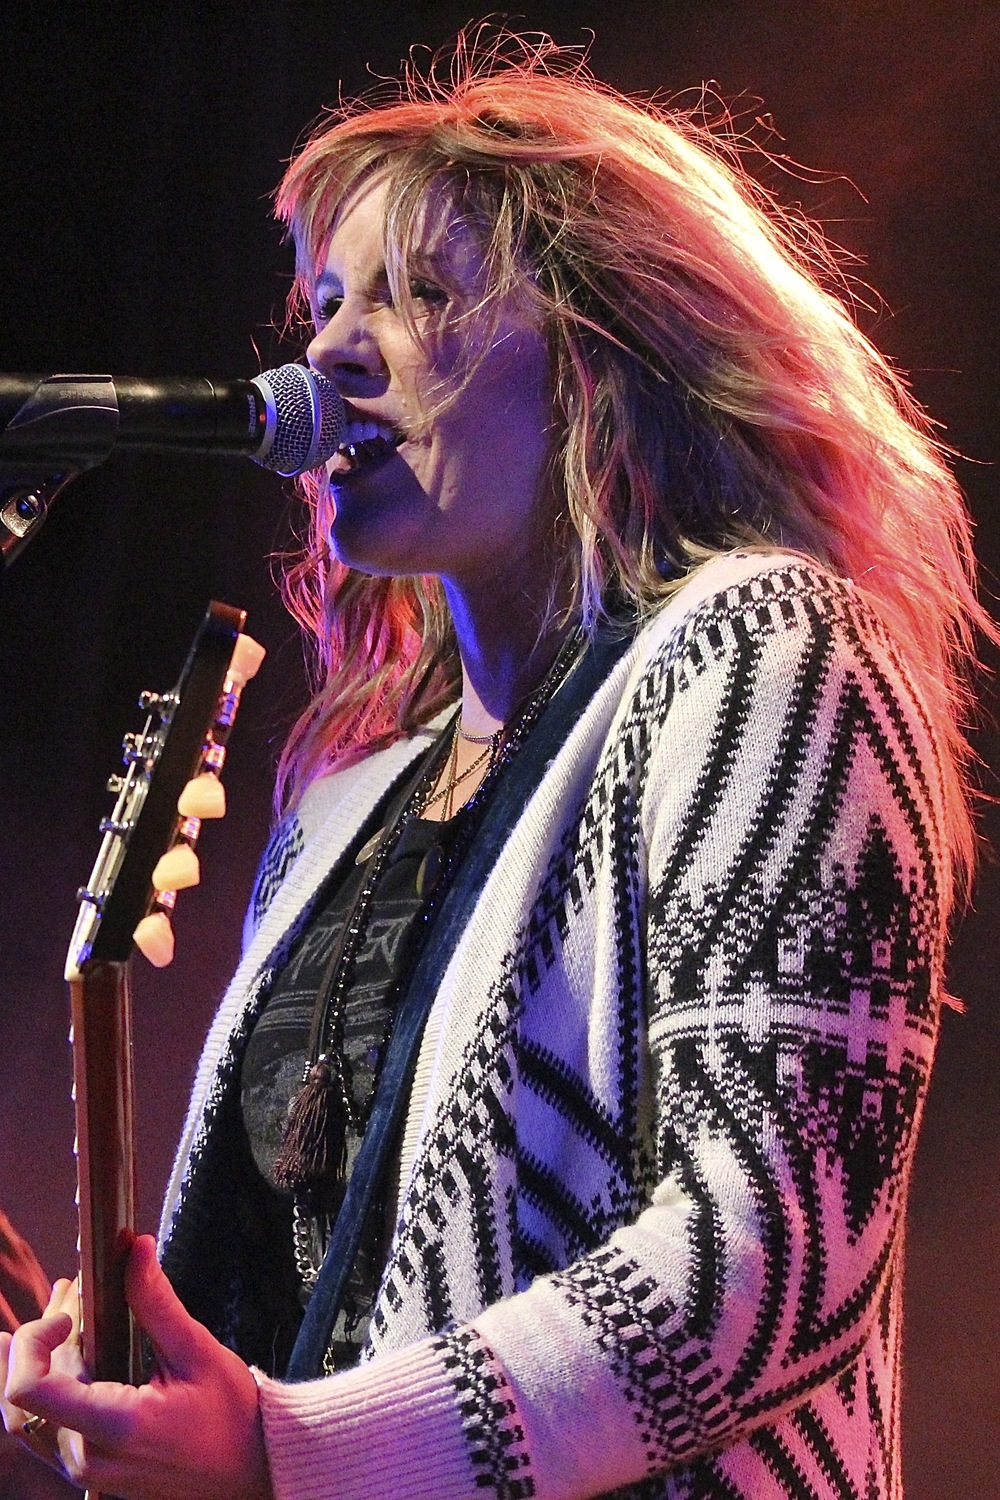 Grace Potter/Grace Potter & The Nocturnals